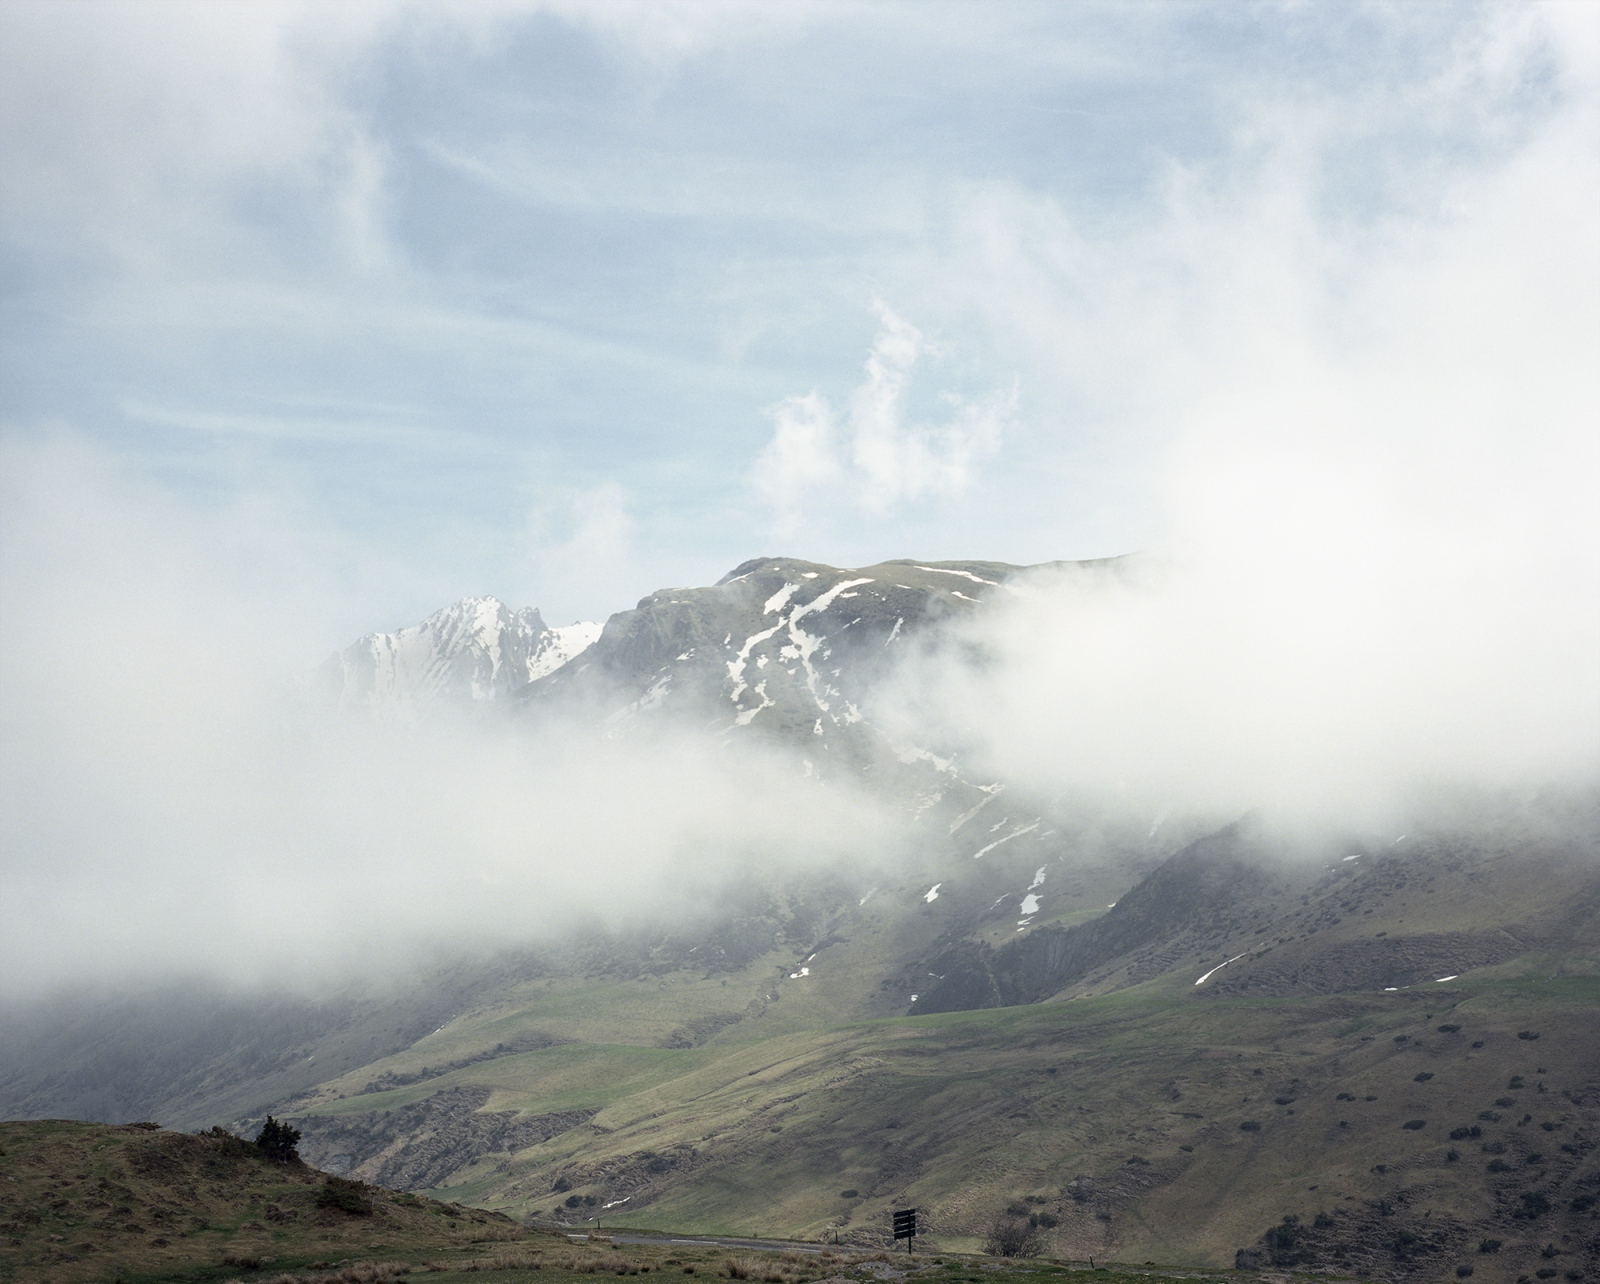 France,Aulus-Les-Bains. A view of the Pyrenees from the col d'Agnes.The legend by the Greek mythology recounts that the name of the Pyrenees Mountains come from Pyrene, the daughter of Bebrex. The mountains would be a monuments built by Hercules to pay homage to his beloved Pyrene.